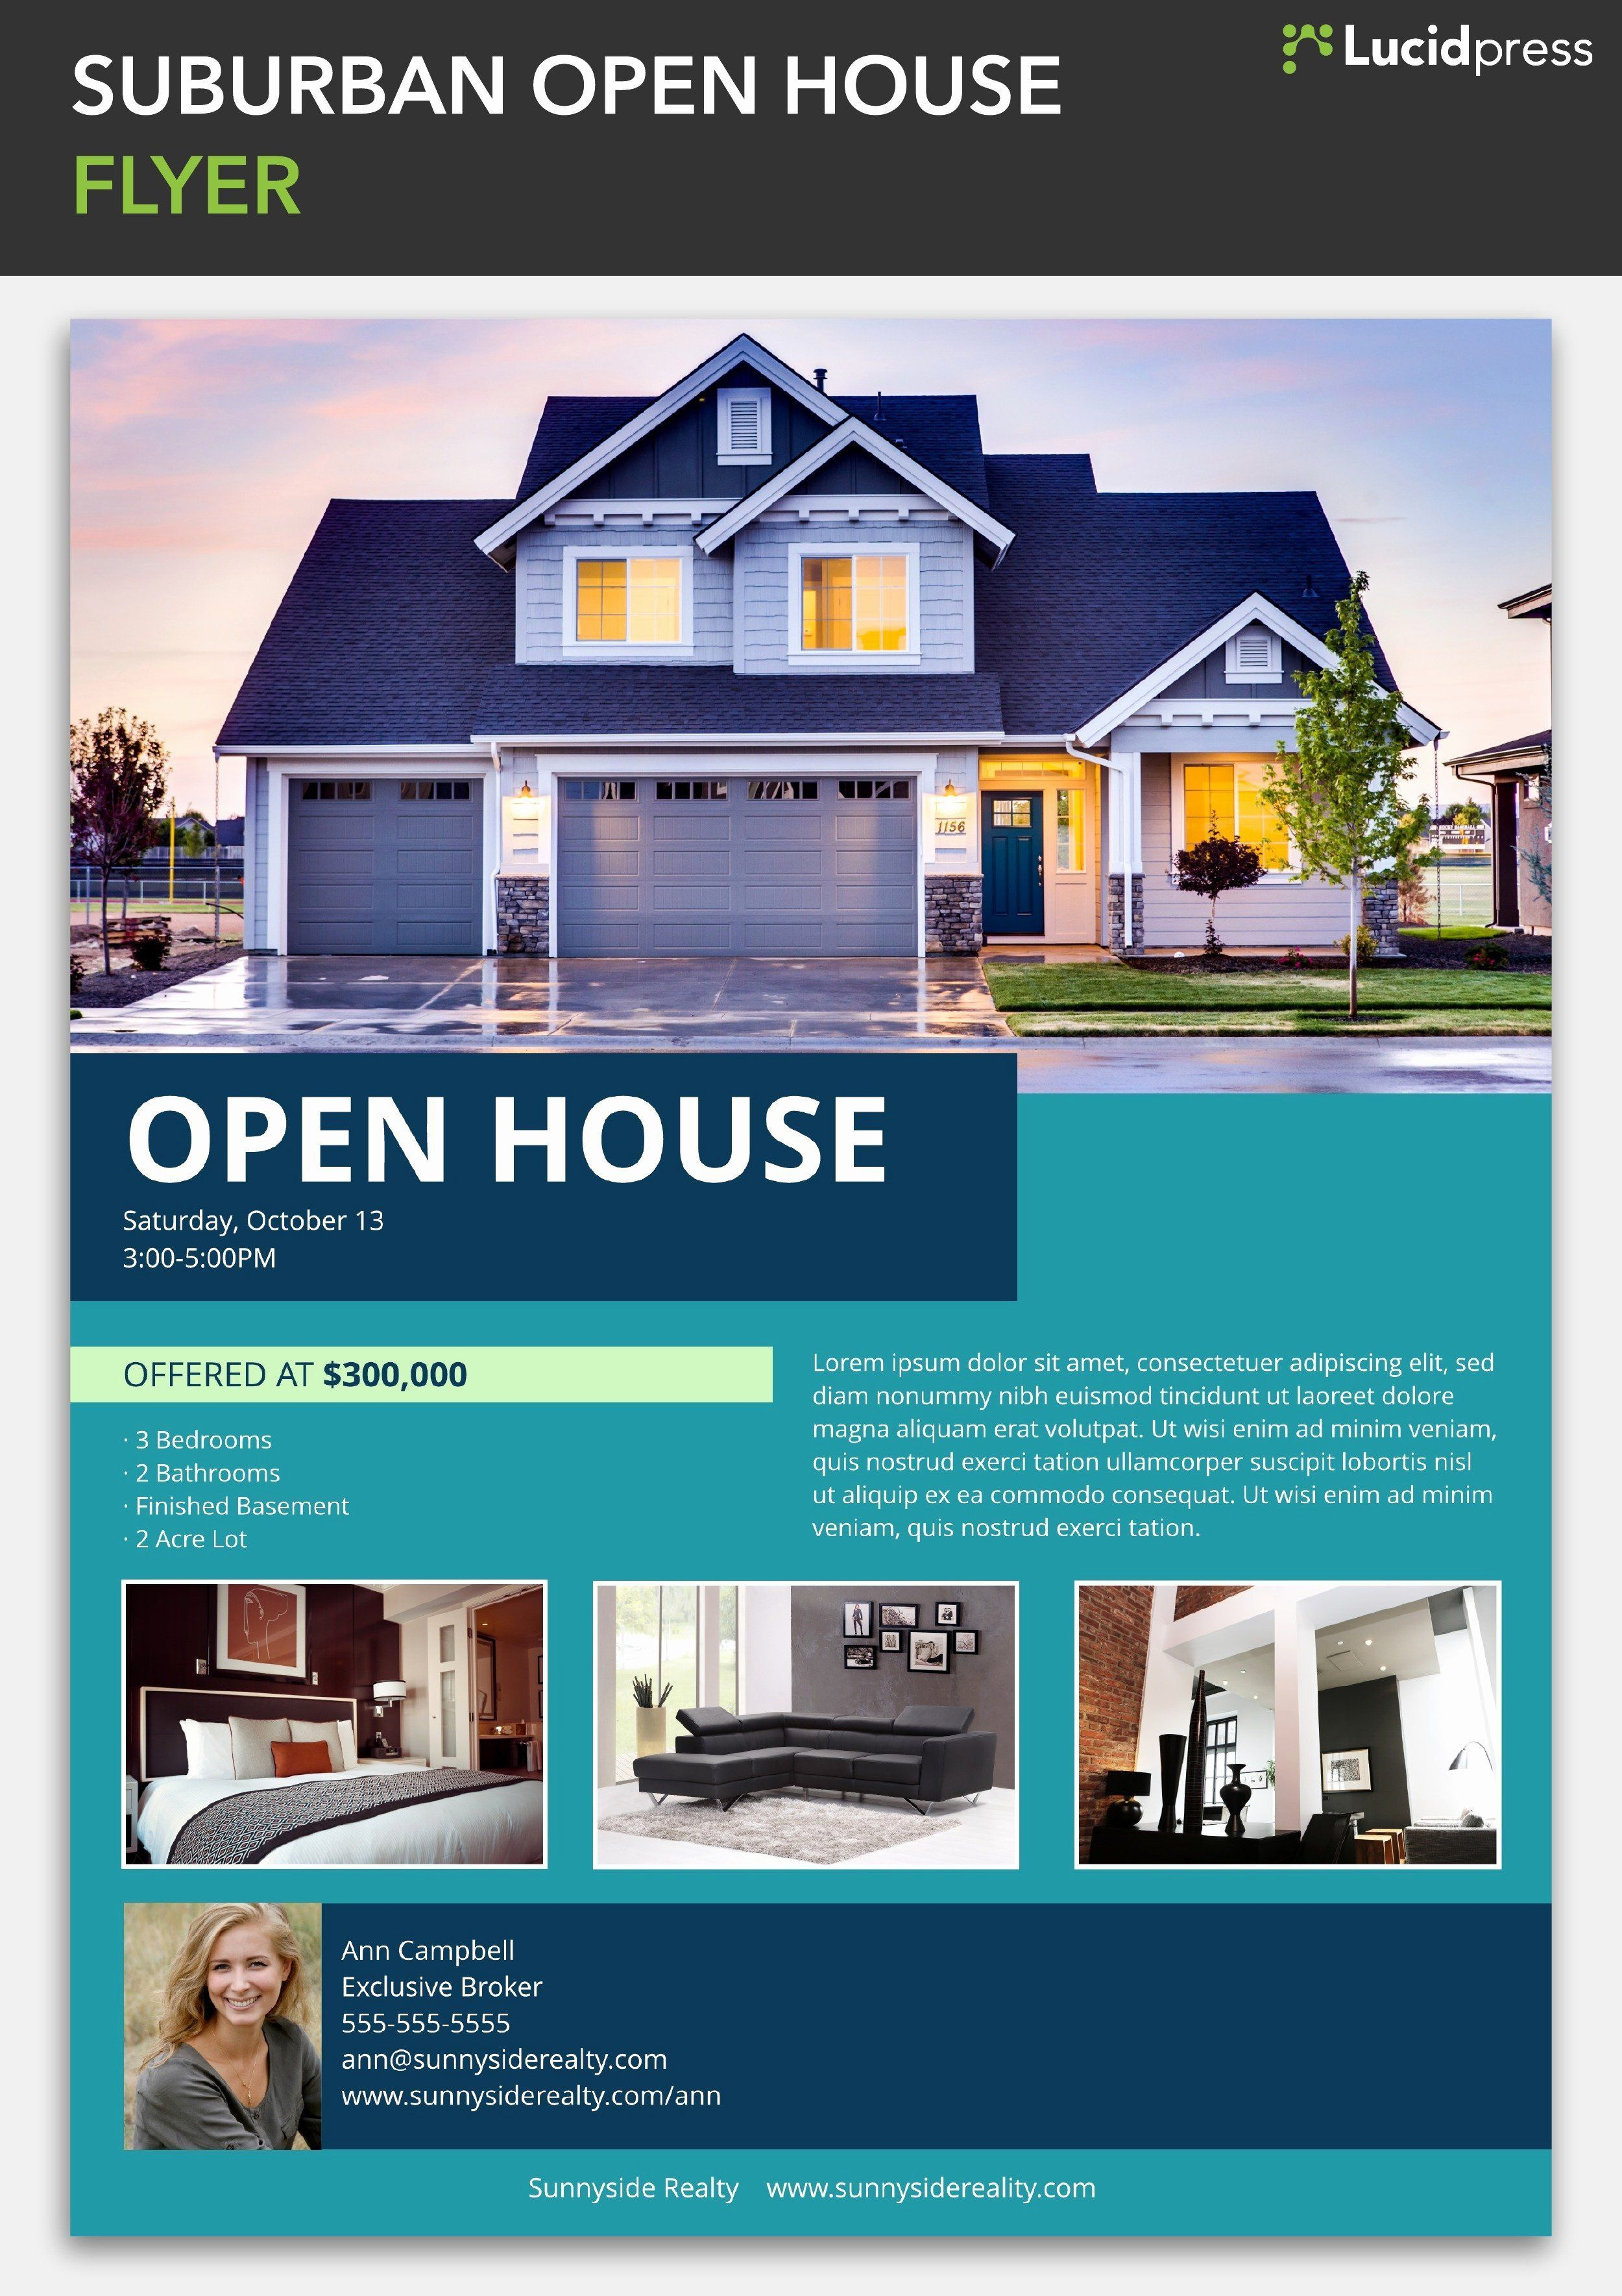 001 Awful Open House Flyer Template Highest Quality  Templates Free School MicrosoftFull